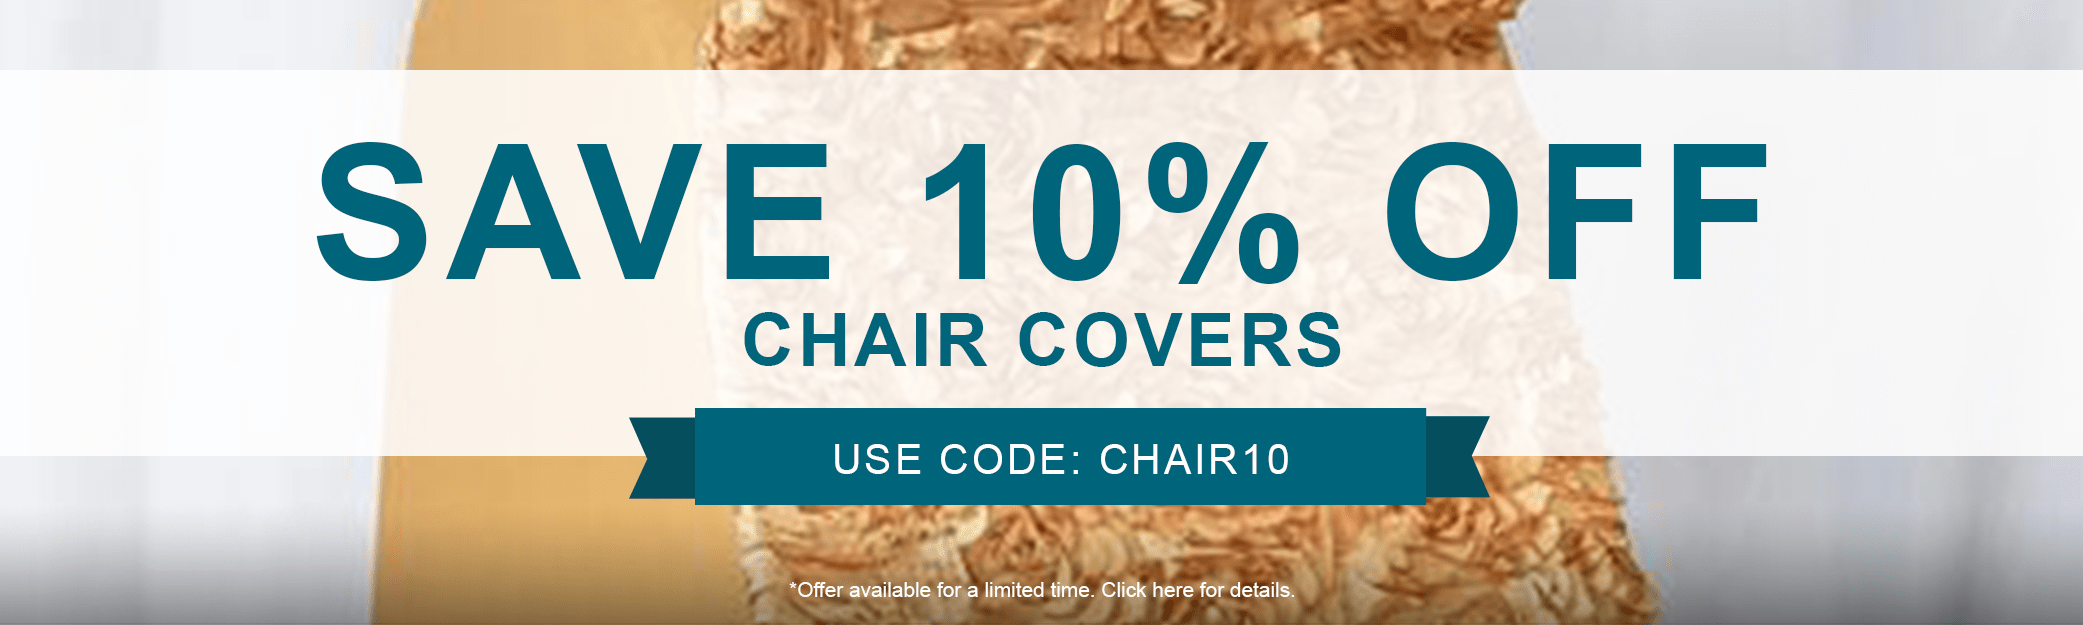 10% off Chair Covers